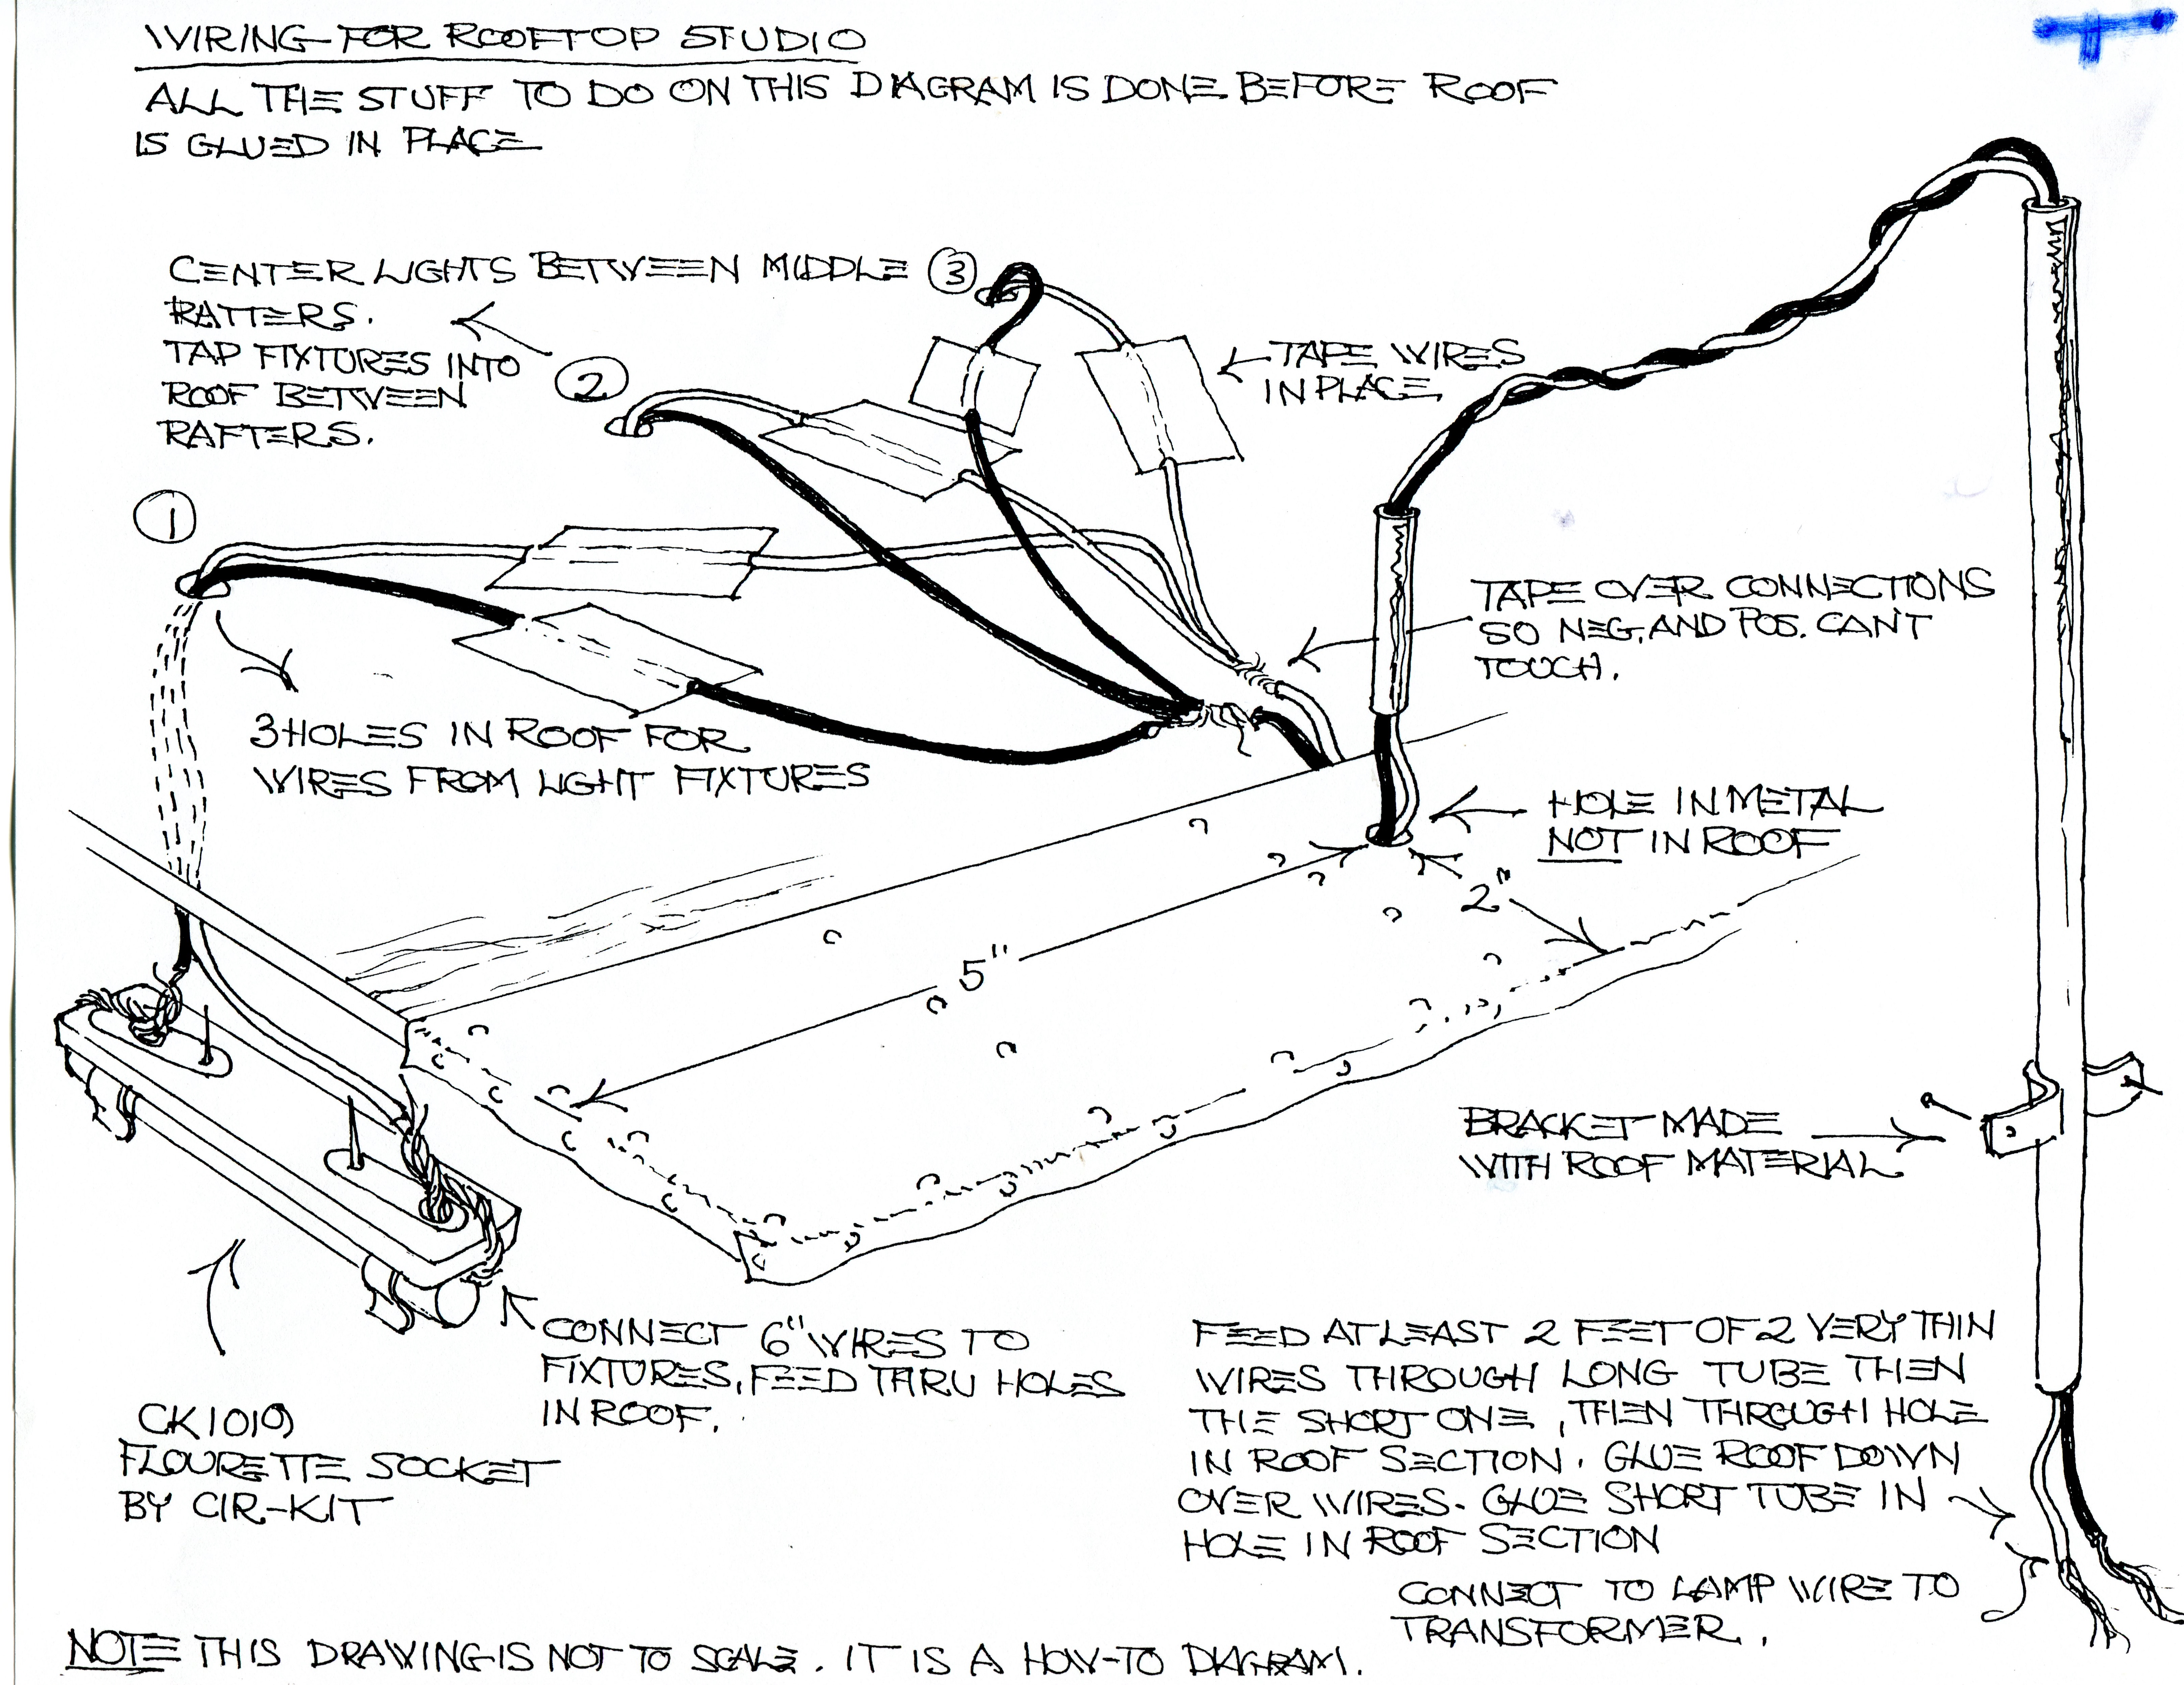 rooftop wiring diagram114?w=640 smallhousepress from bug juice to bird poop notes from the studio pocket pickle wiring diagram at alyssarenee.co